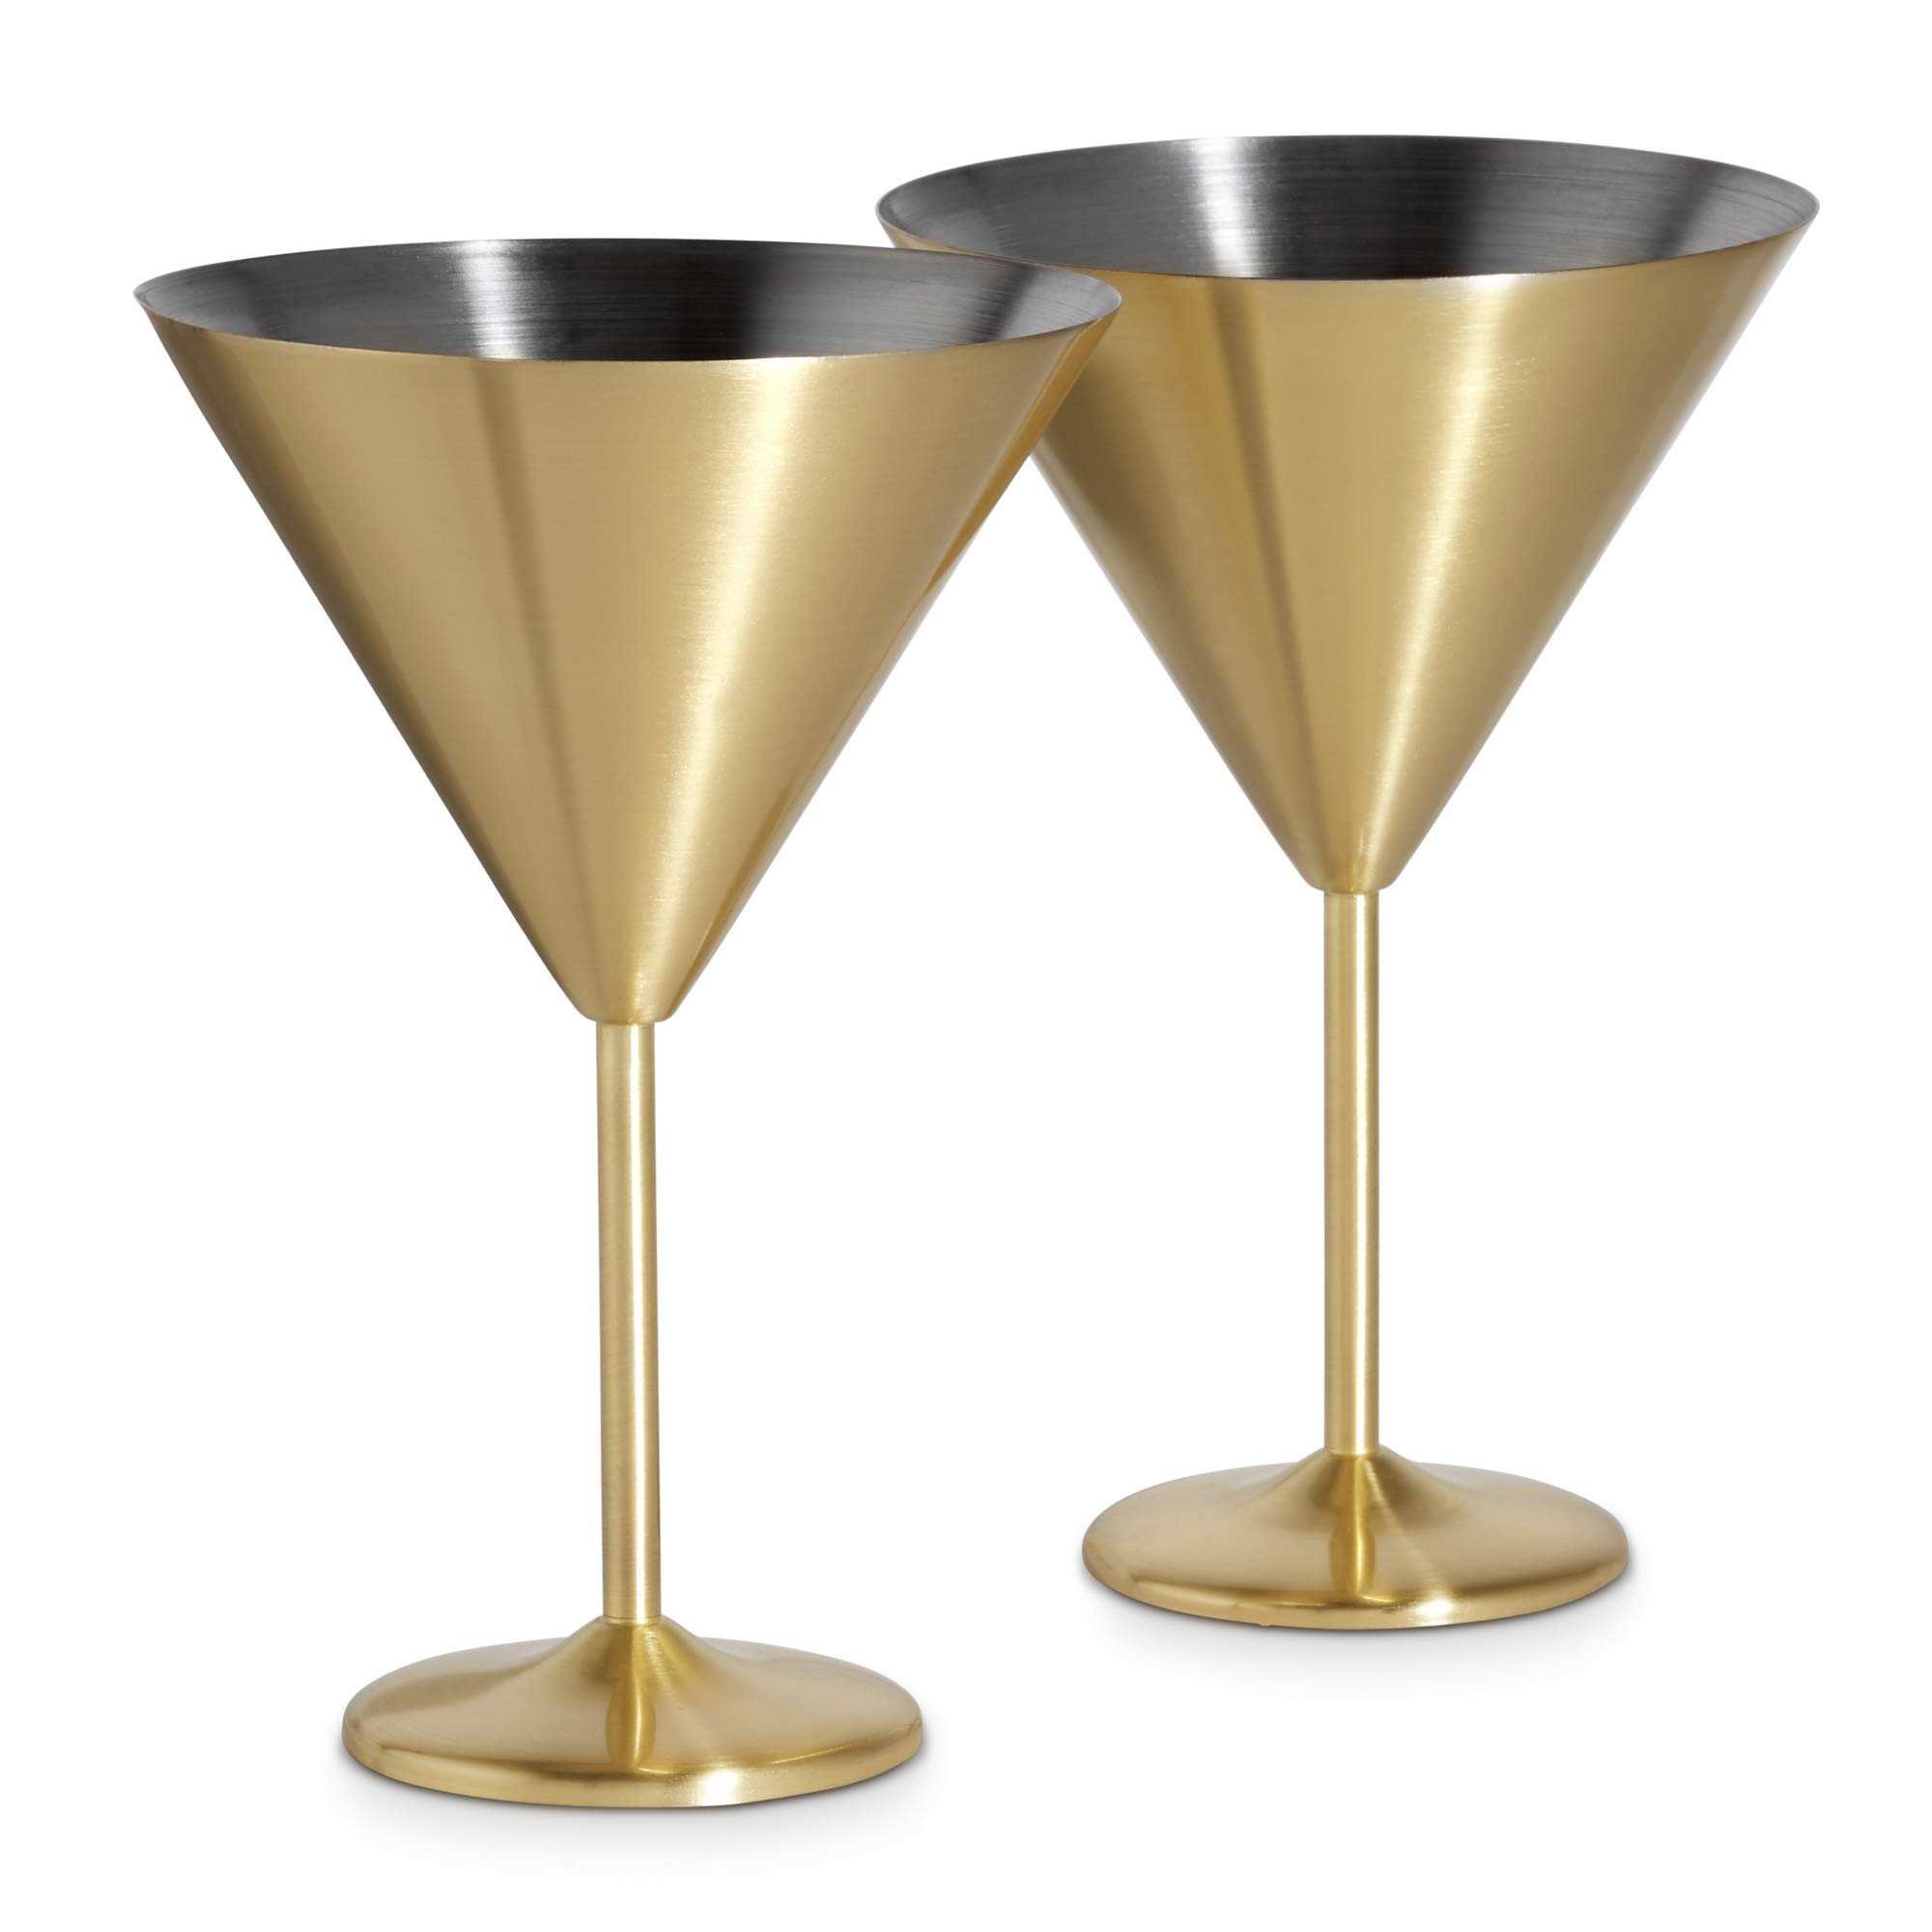 VonShef Gold Martini Cocktail Glasses, Brushed Gold Stainless Steel, Set of 2 with Gift Box